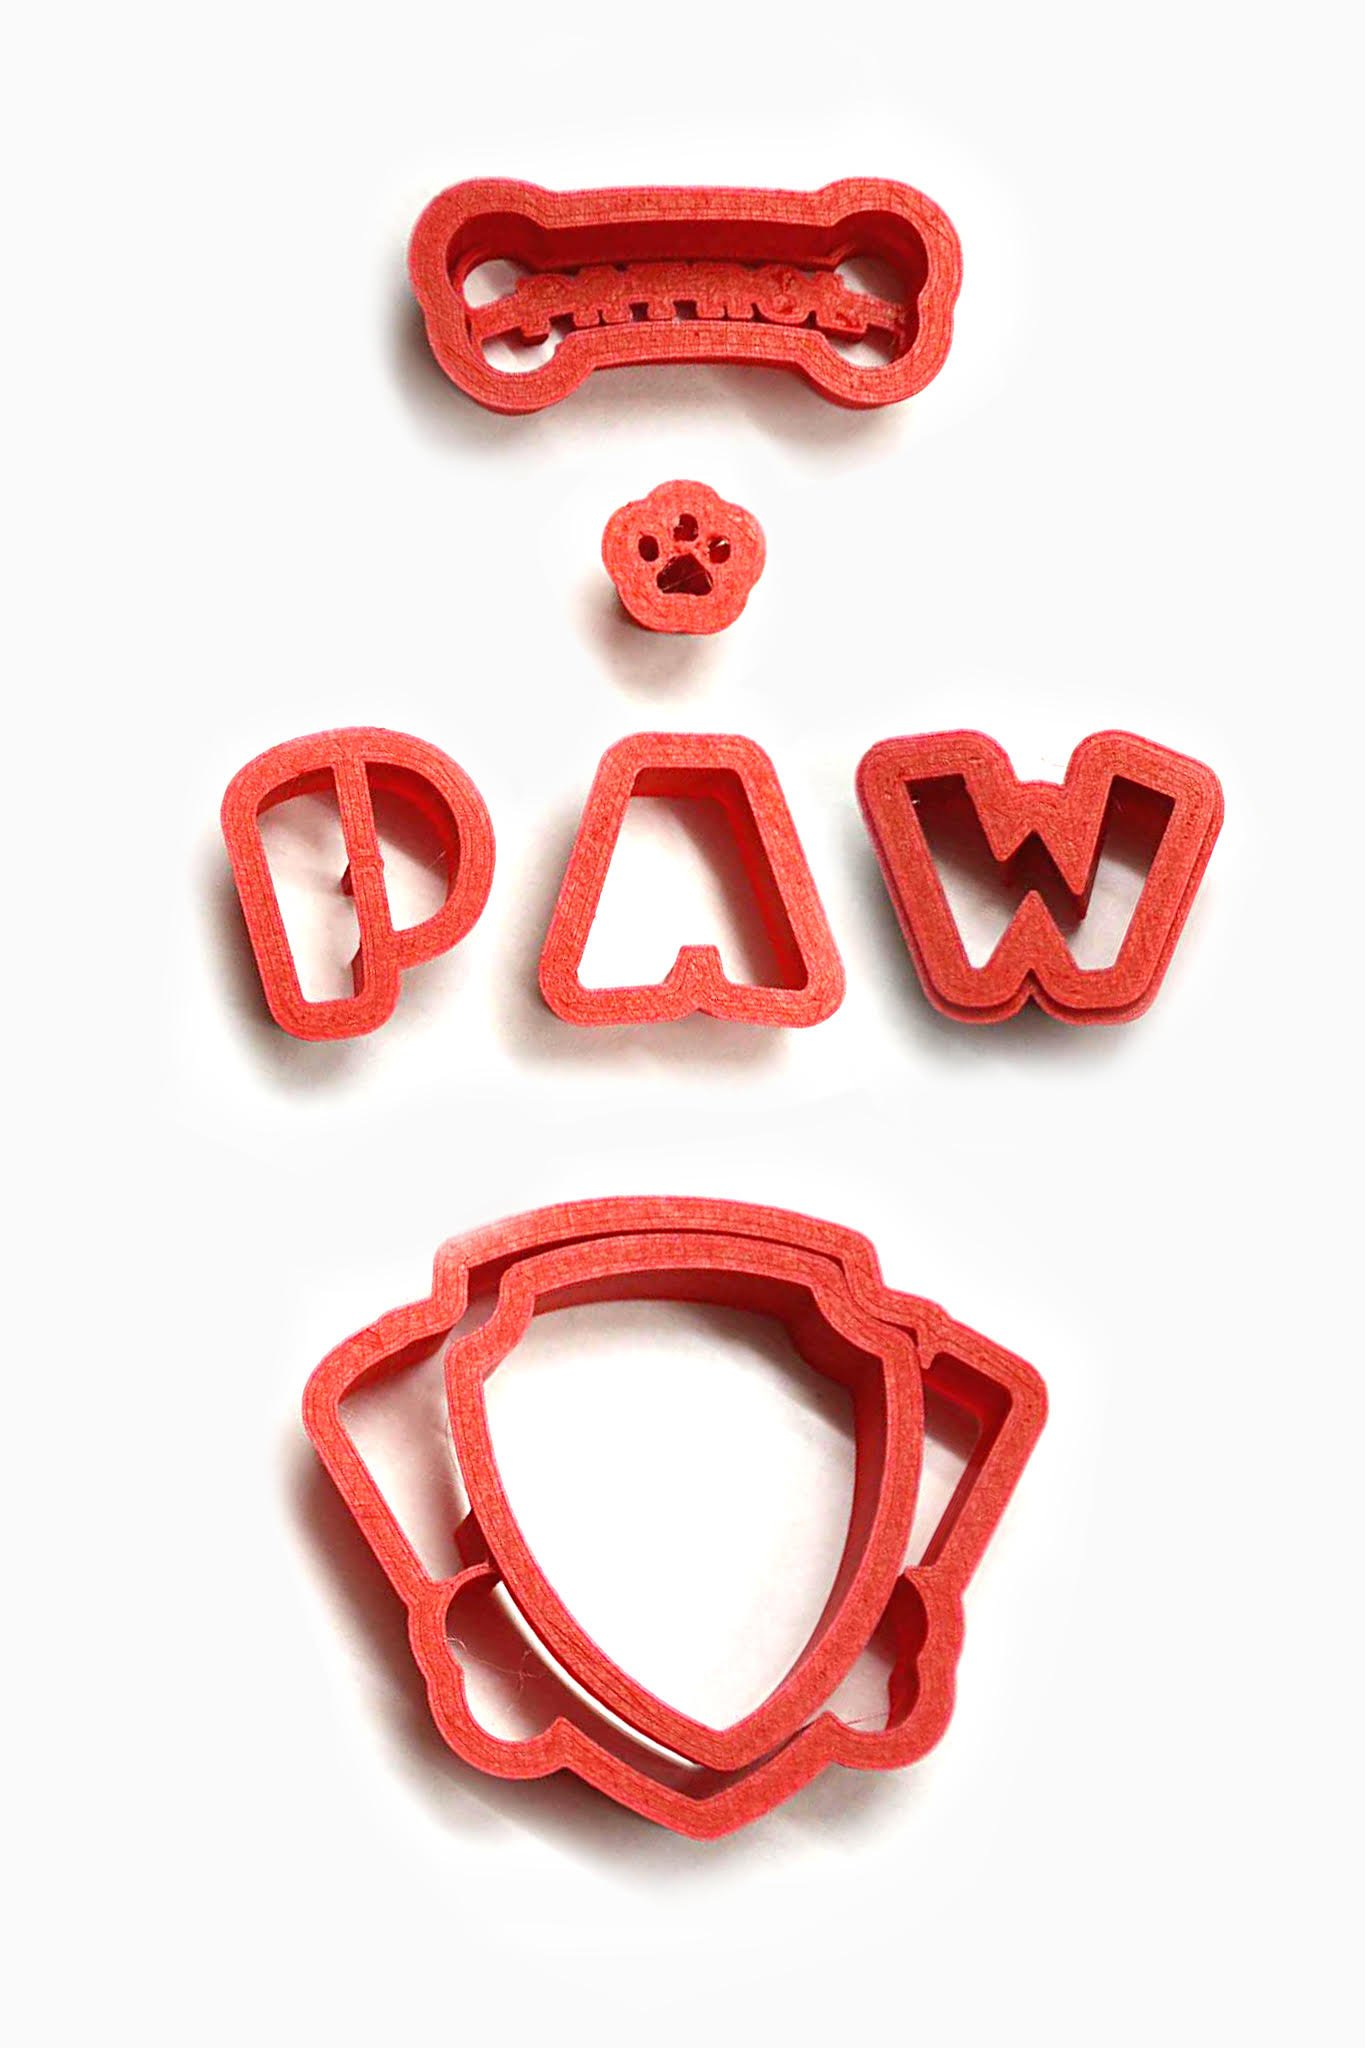 Paw Patrol Logo Cookie Cutter Set, choose 2, 3, 4, 5.5, 7, 9 or 11 inches. This cutter is a lot easier to use than trying to cut the logo out by hand. Absolutely (3 inch)